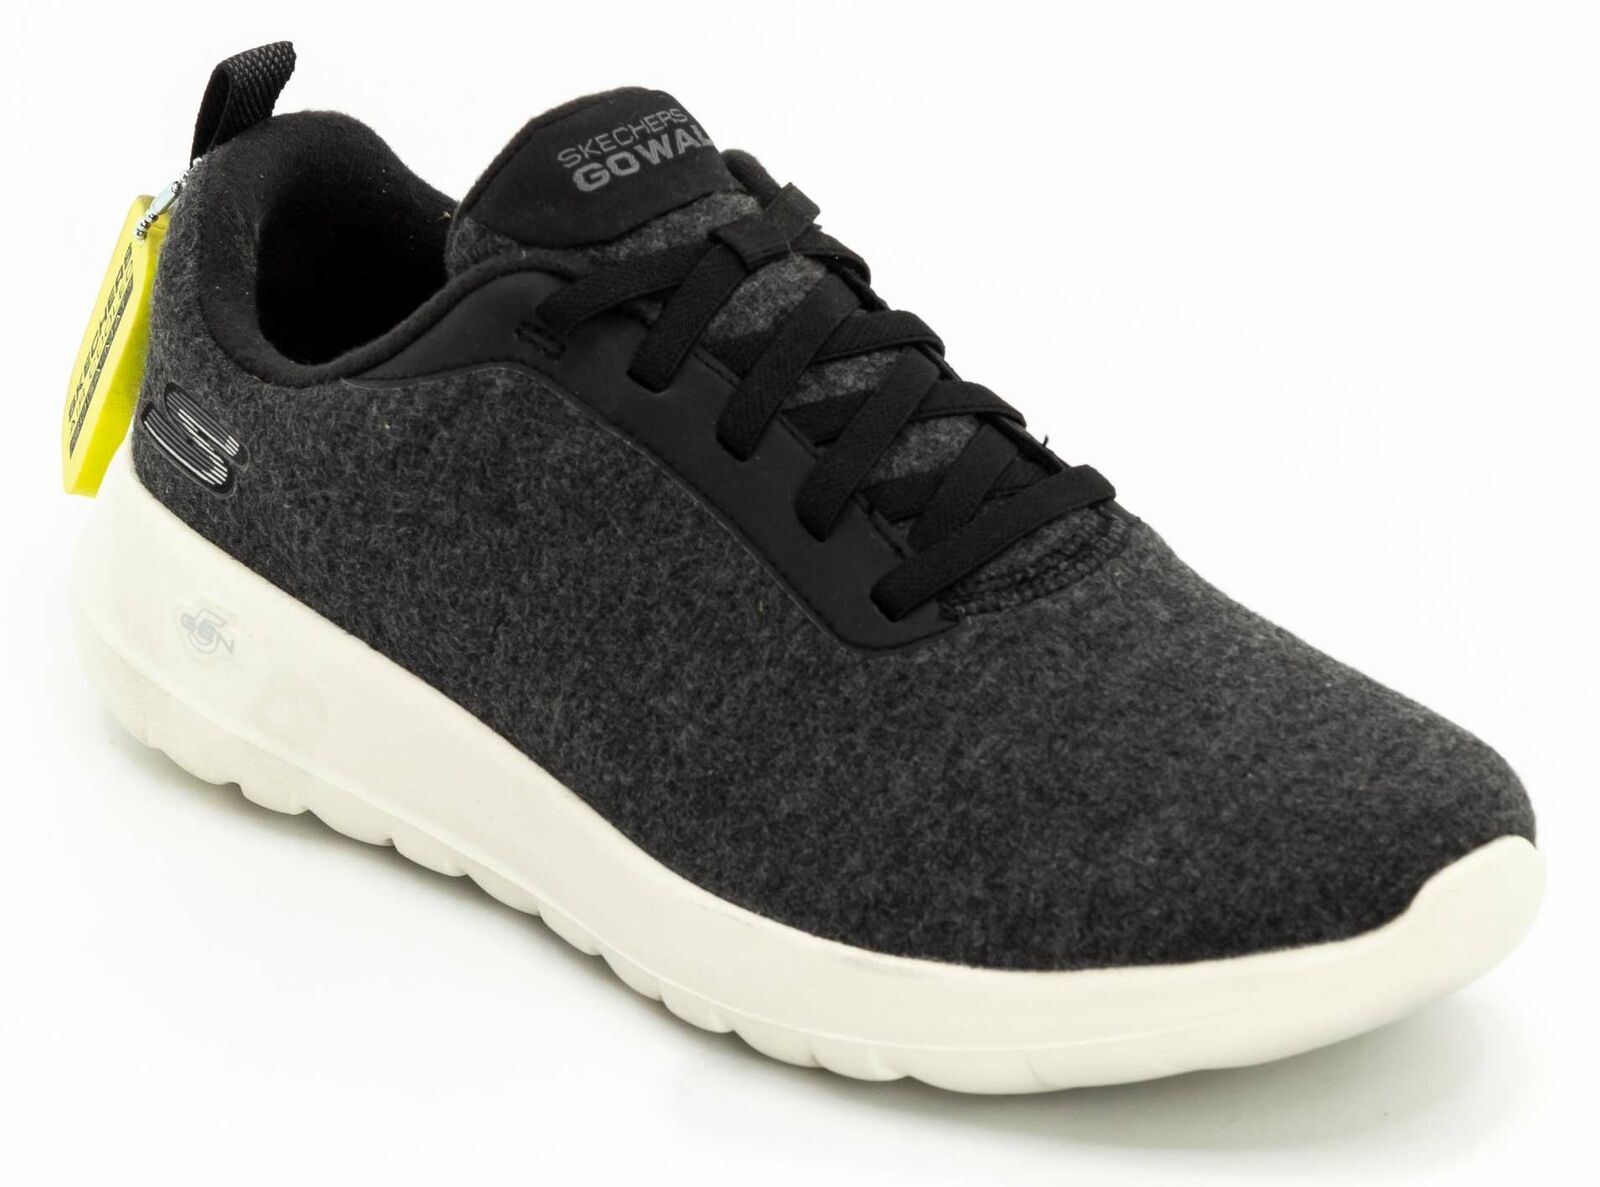 SKECHERS Men's GoWalk Max Sneakers shoes